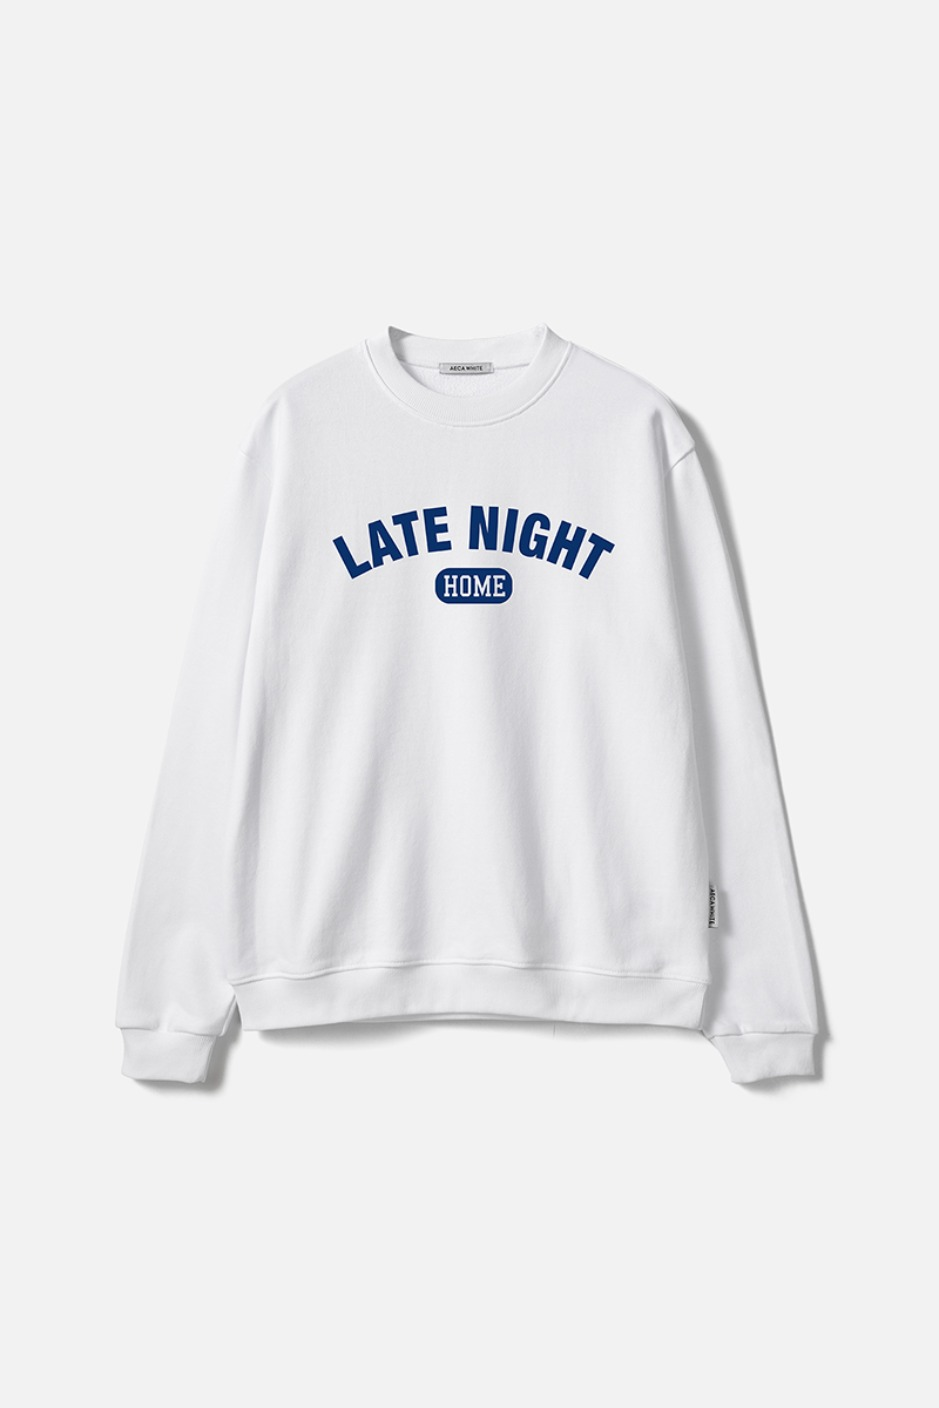 LATE NIGHT SWEATSHIRT-WHITE